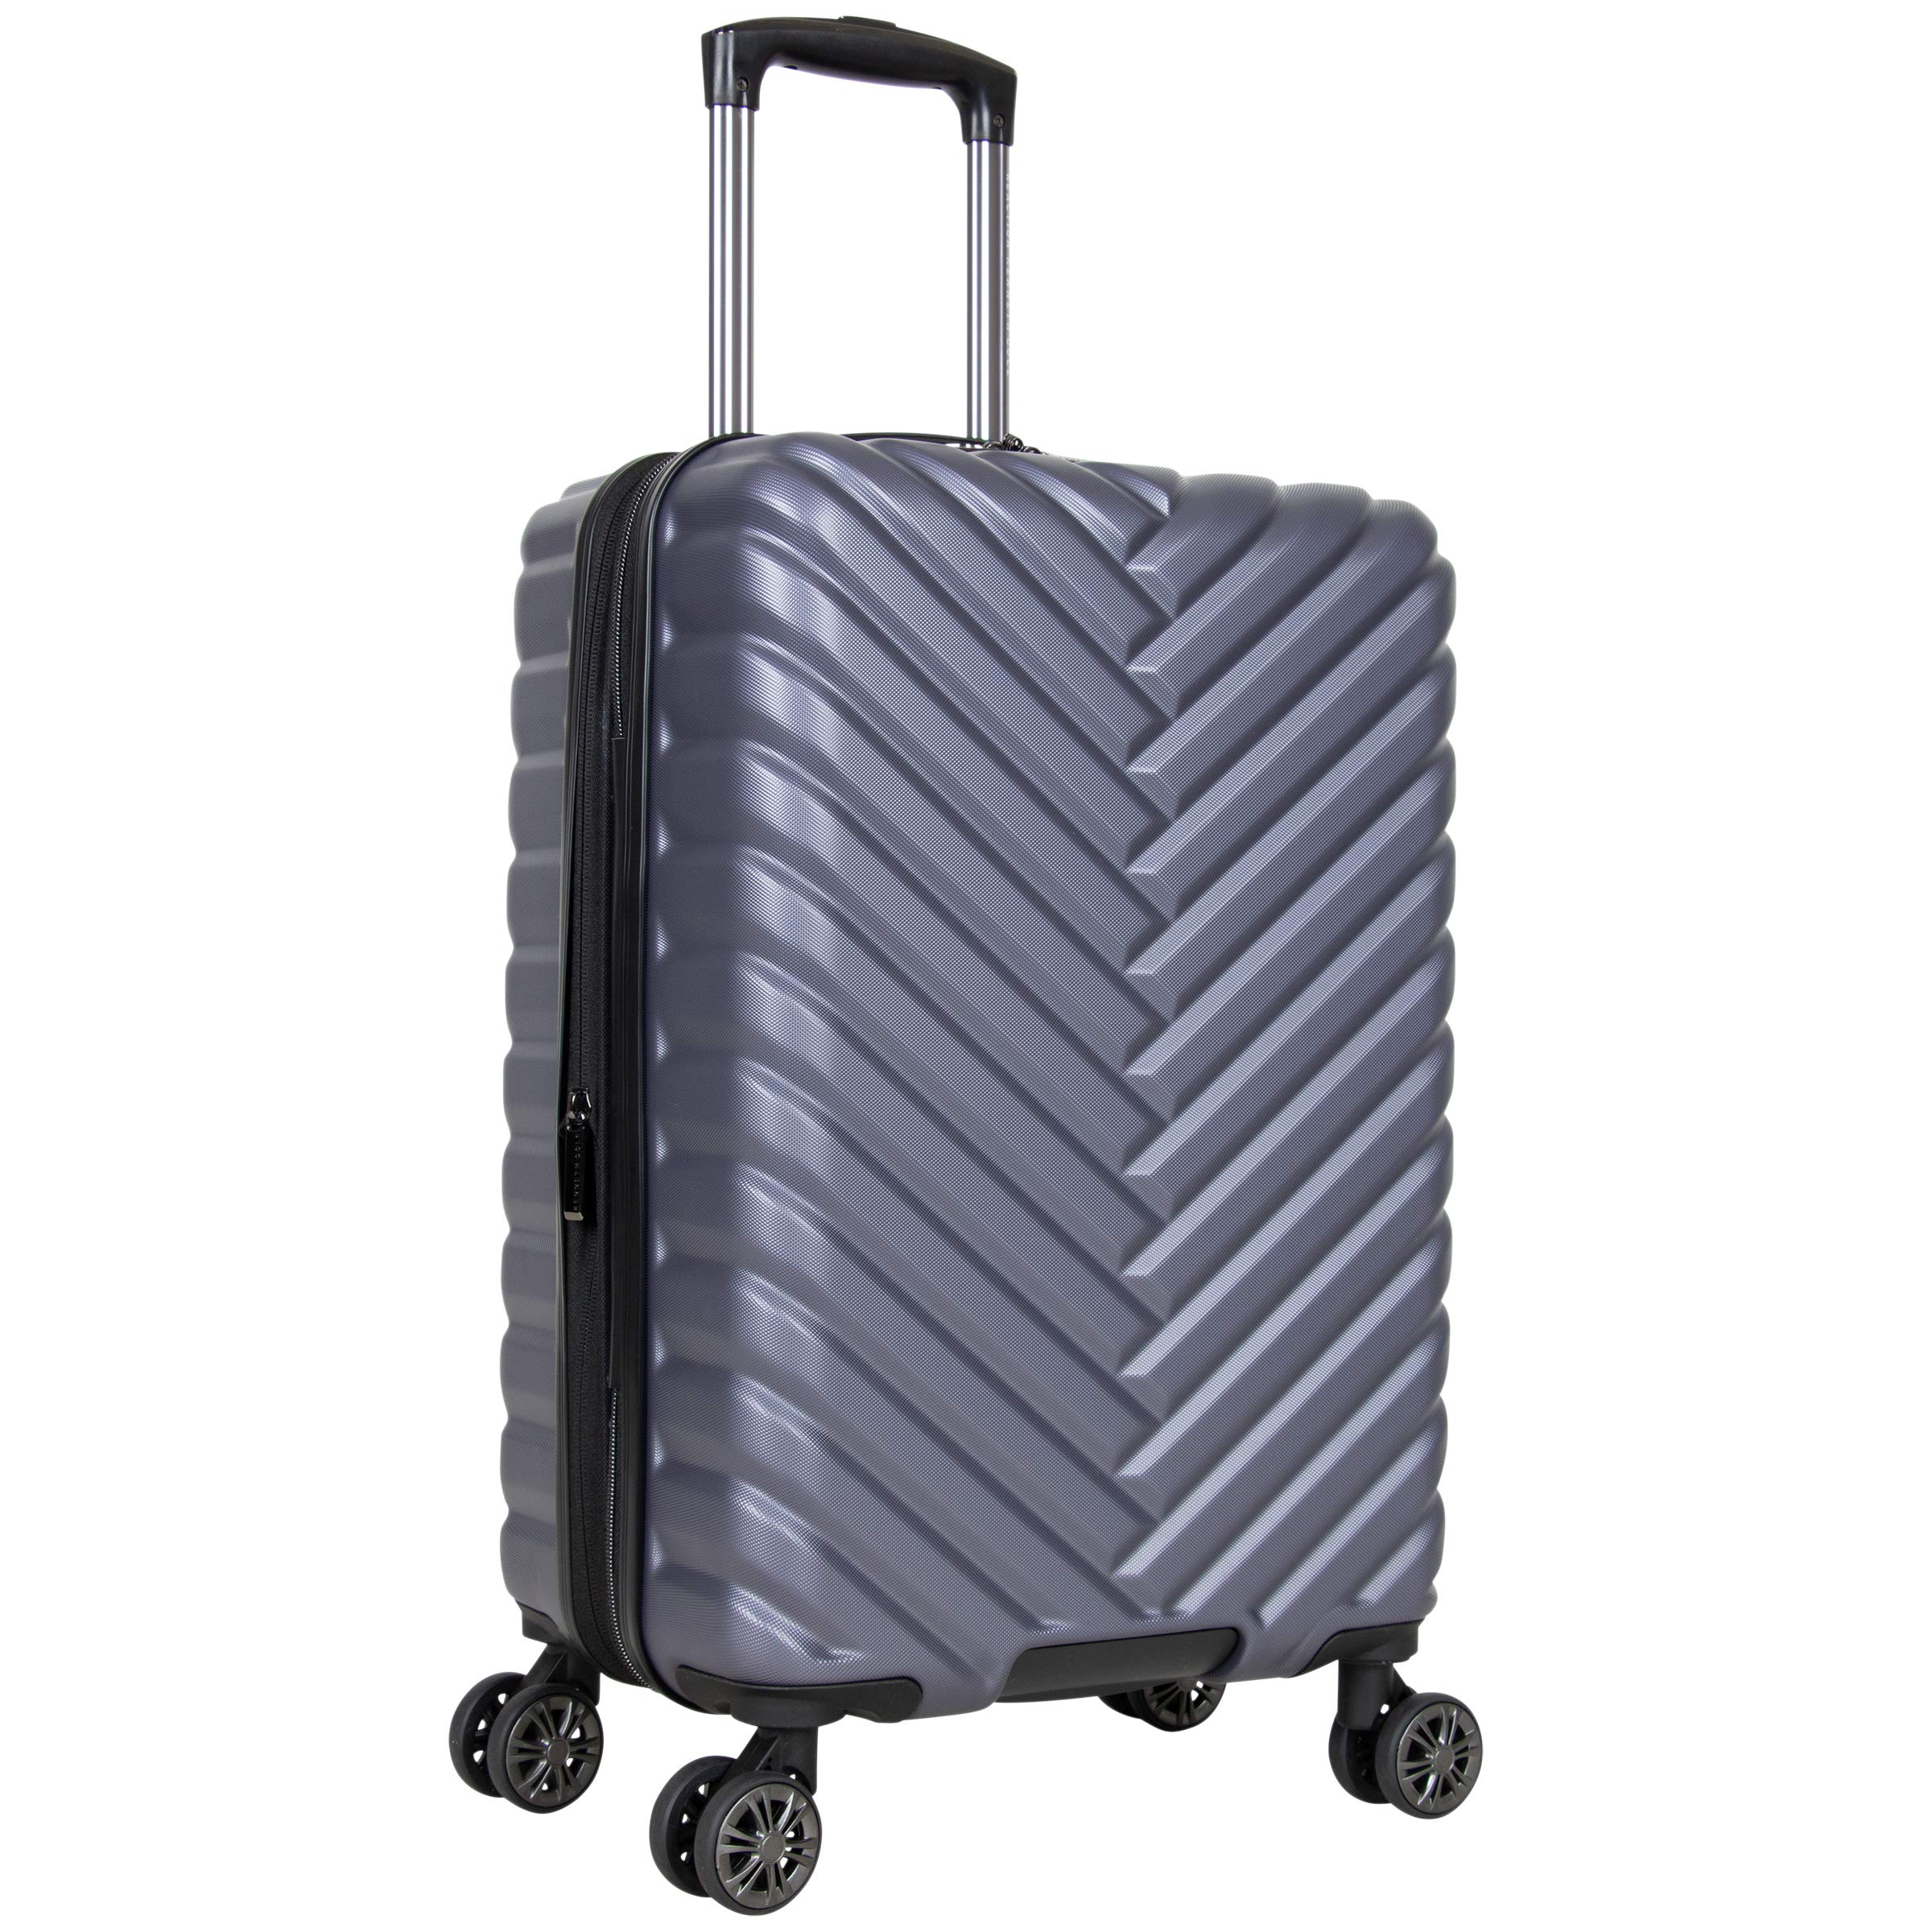 Kenneth Cole Reaction Women's Madison Square Hardside Chevron Expandable Luggage, Smokey Purple, 20-Inch Carry On